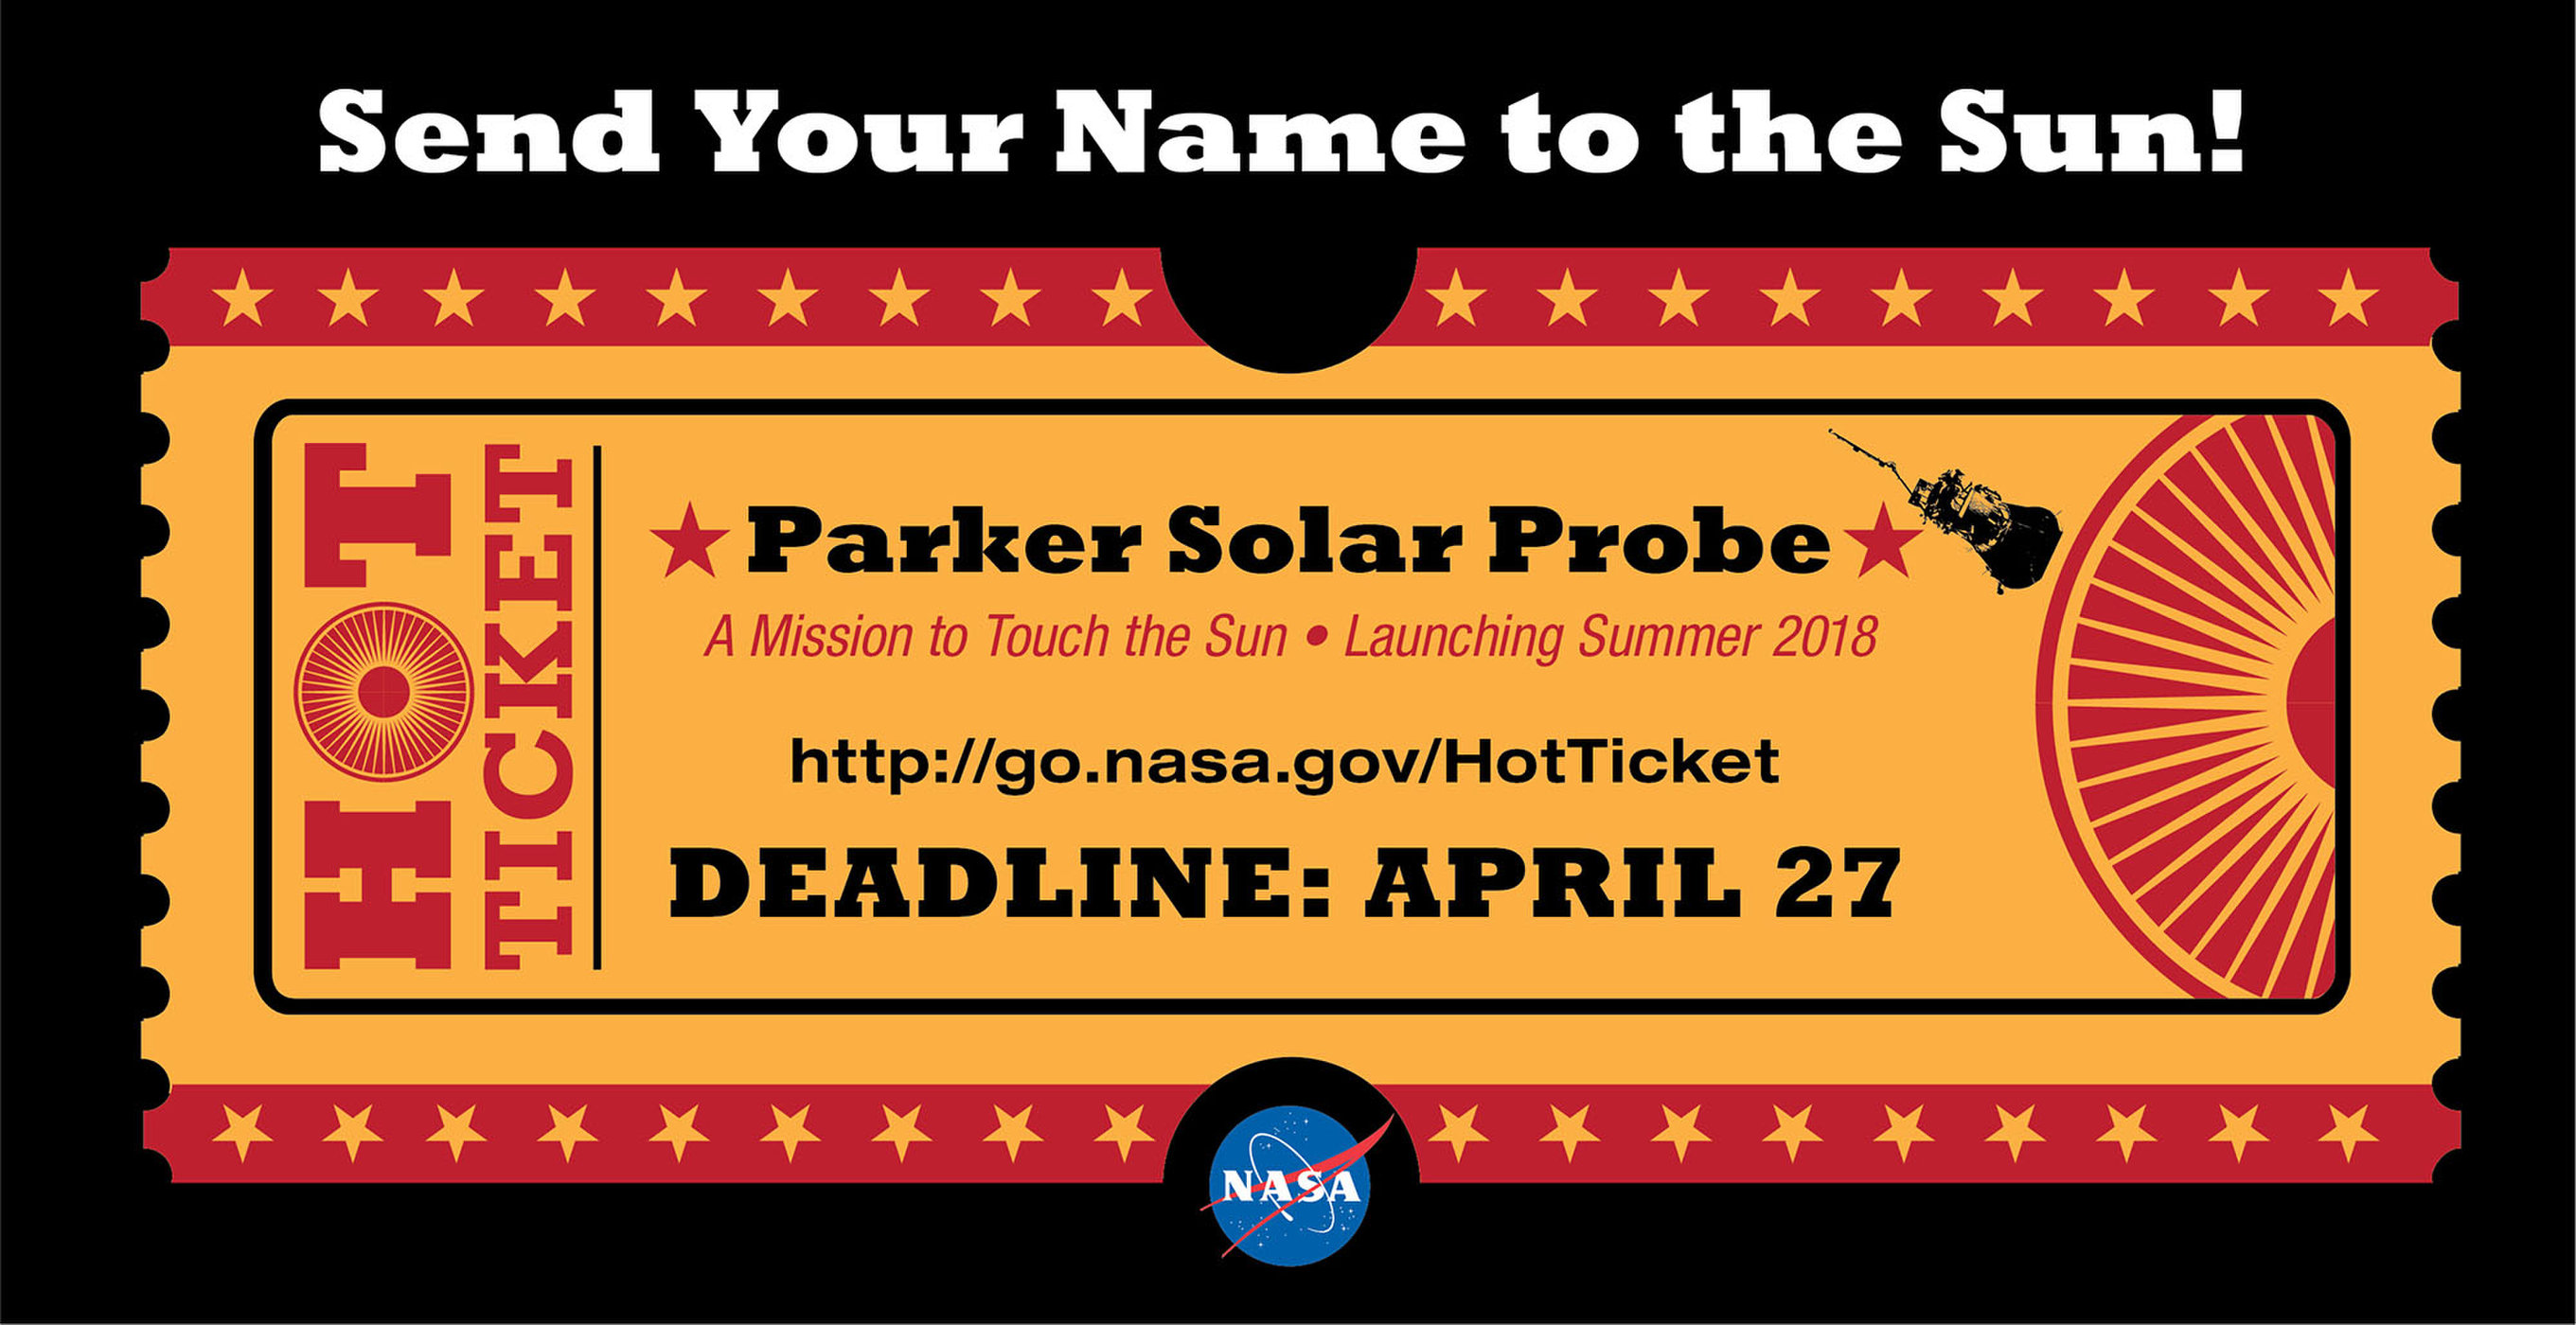 Send your name to the Sun aboard the Parker Solar Probe